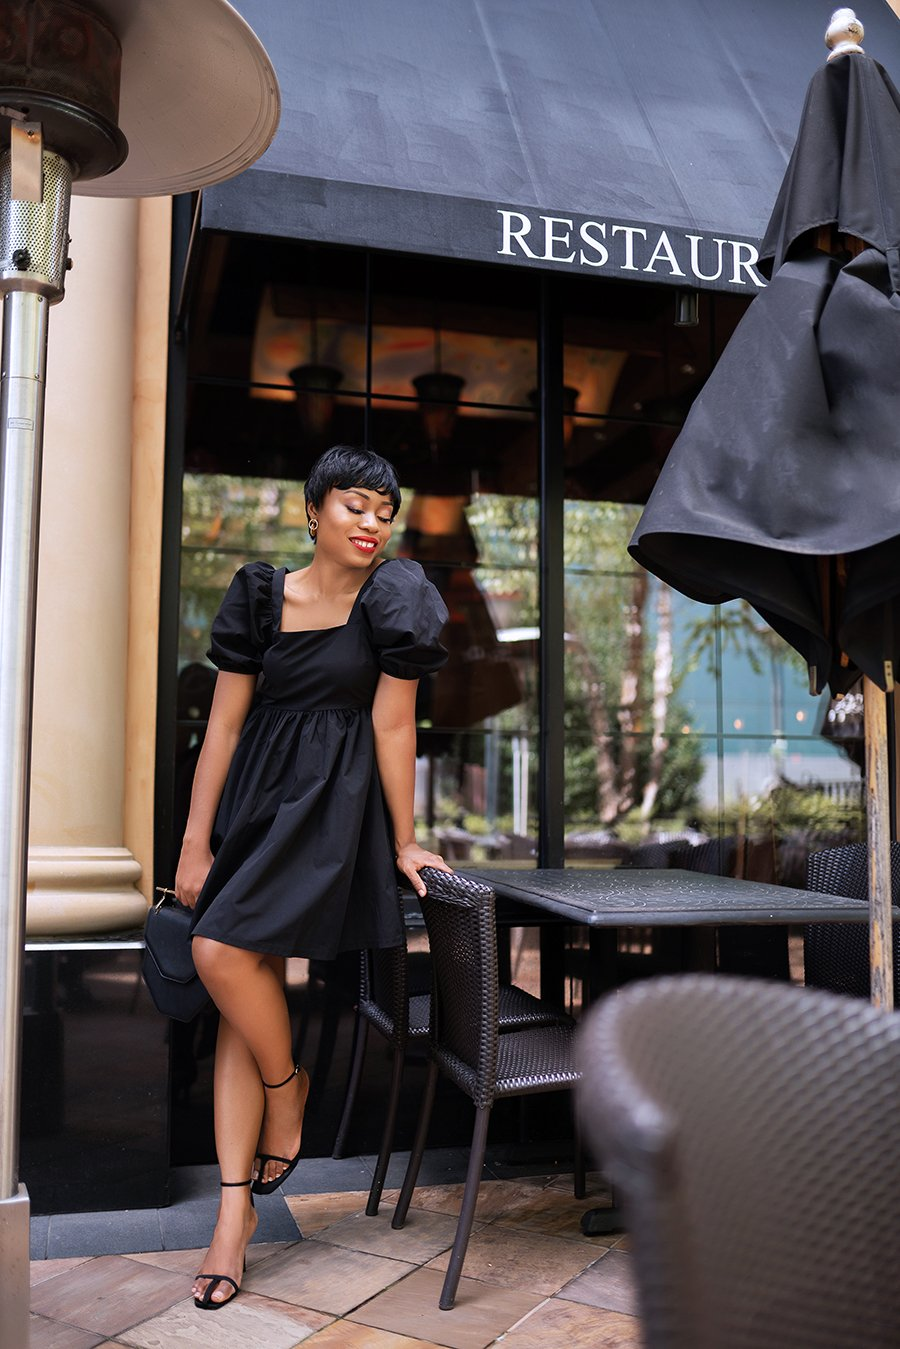 stella-adewunmi-of-jadore-fashion-blog-shares-HMxme-Little-black-dress